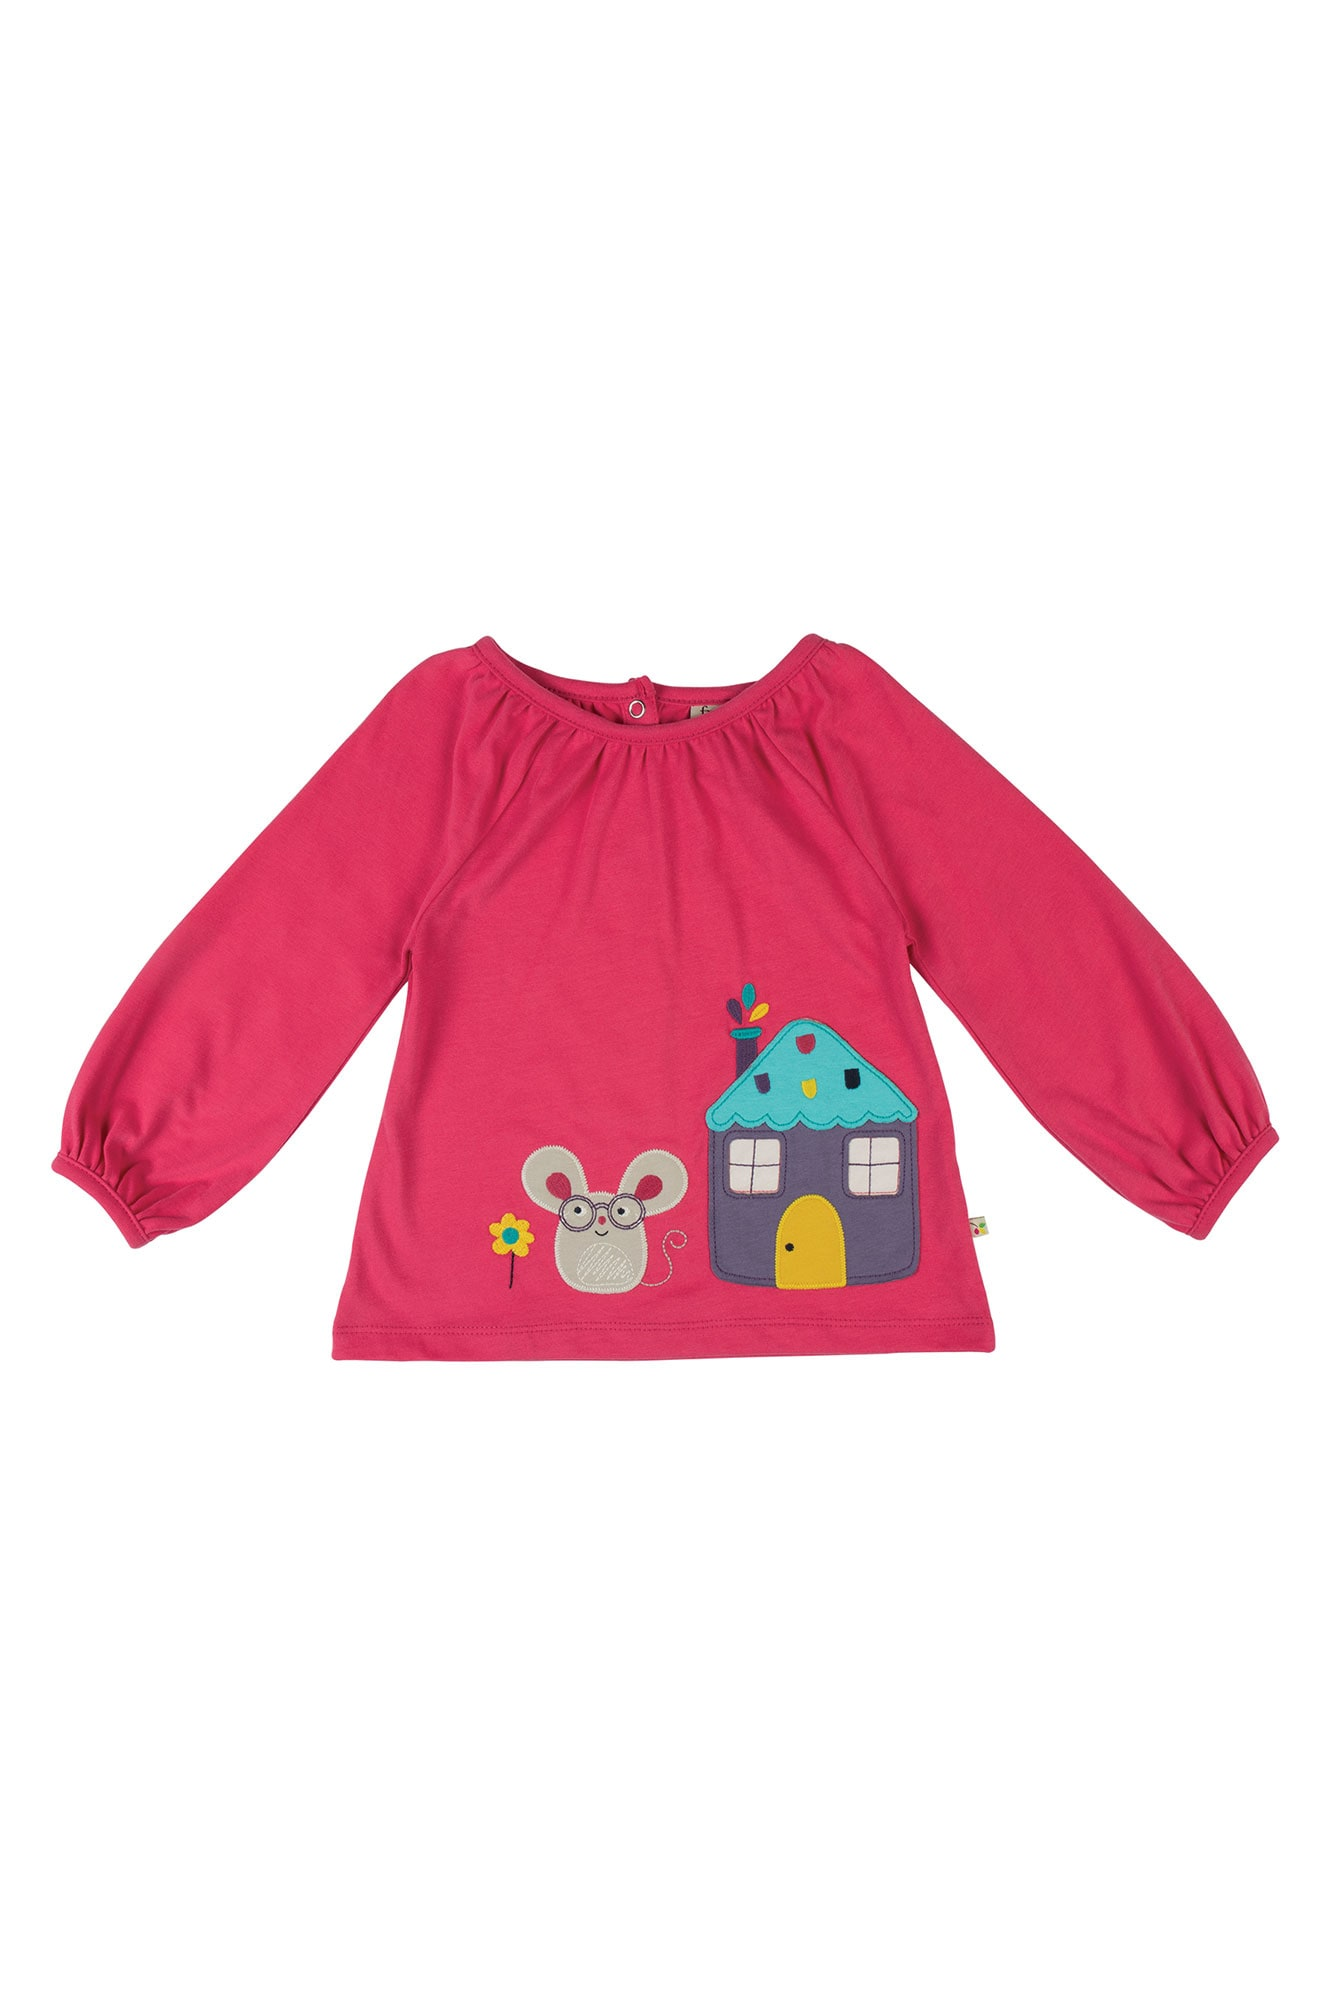 Stockists of Annabel Applique Top